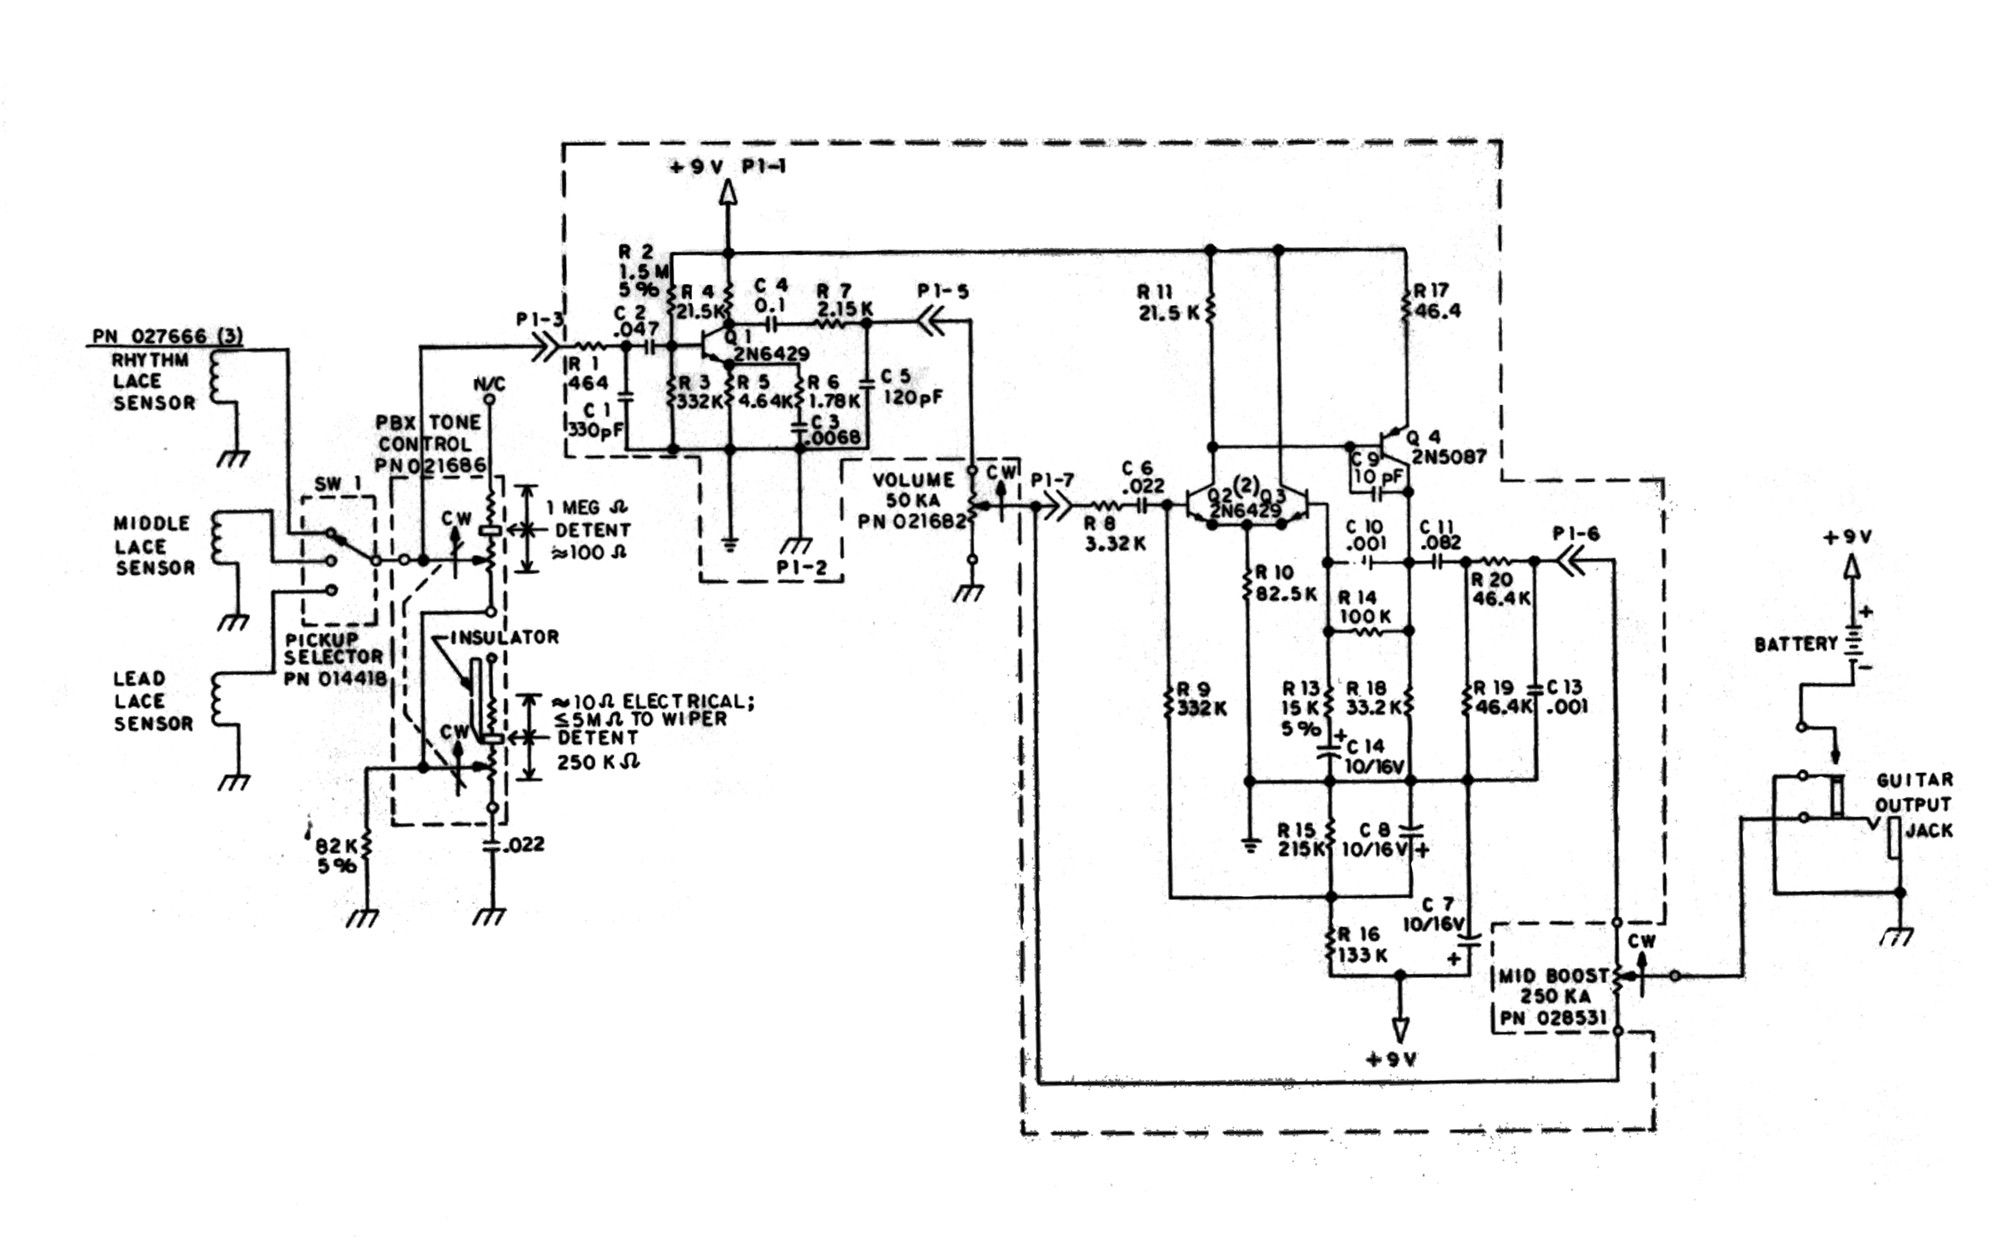 medium resolution of fender noiseless jazz bass pickups wiring diagram fresh stewmac intended for stewmac wiring diagrams